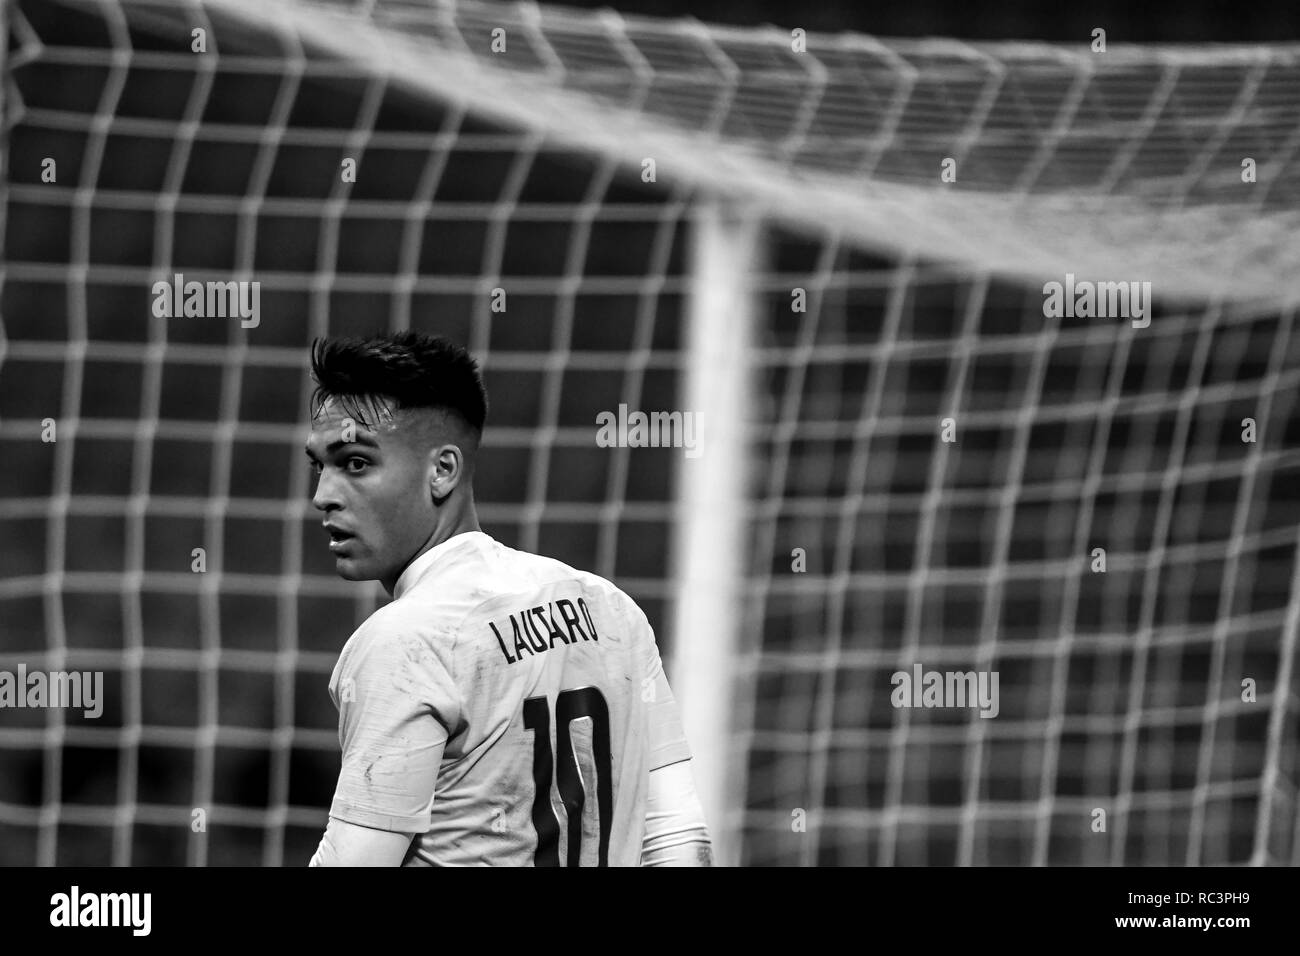 Black and White image of Forward Lautaro Martínez (Inter) looking on during the Italian Cup 'Coppa Italia' football match, Inter Milan vs Benevento Calcio at San Siro Meazza Stadium in Milan, Italy on 13 January 2019. The football match is played behind closed doors after Napoli's Senegalese player Kalidou Koulibaly was subject to racist chants by FC Internazionale's 'ultra' fans during the Boxing Day match. Credit: Piero Cruciatti/Alamy Live News - Stock Image